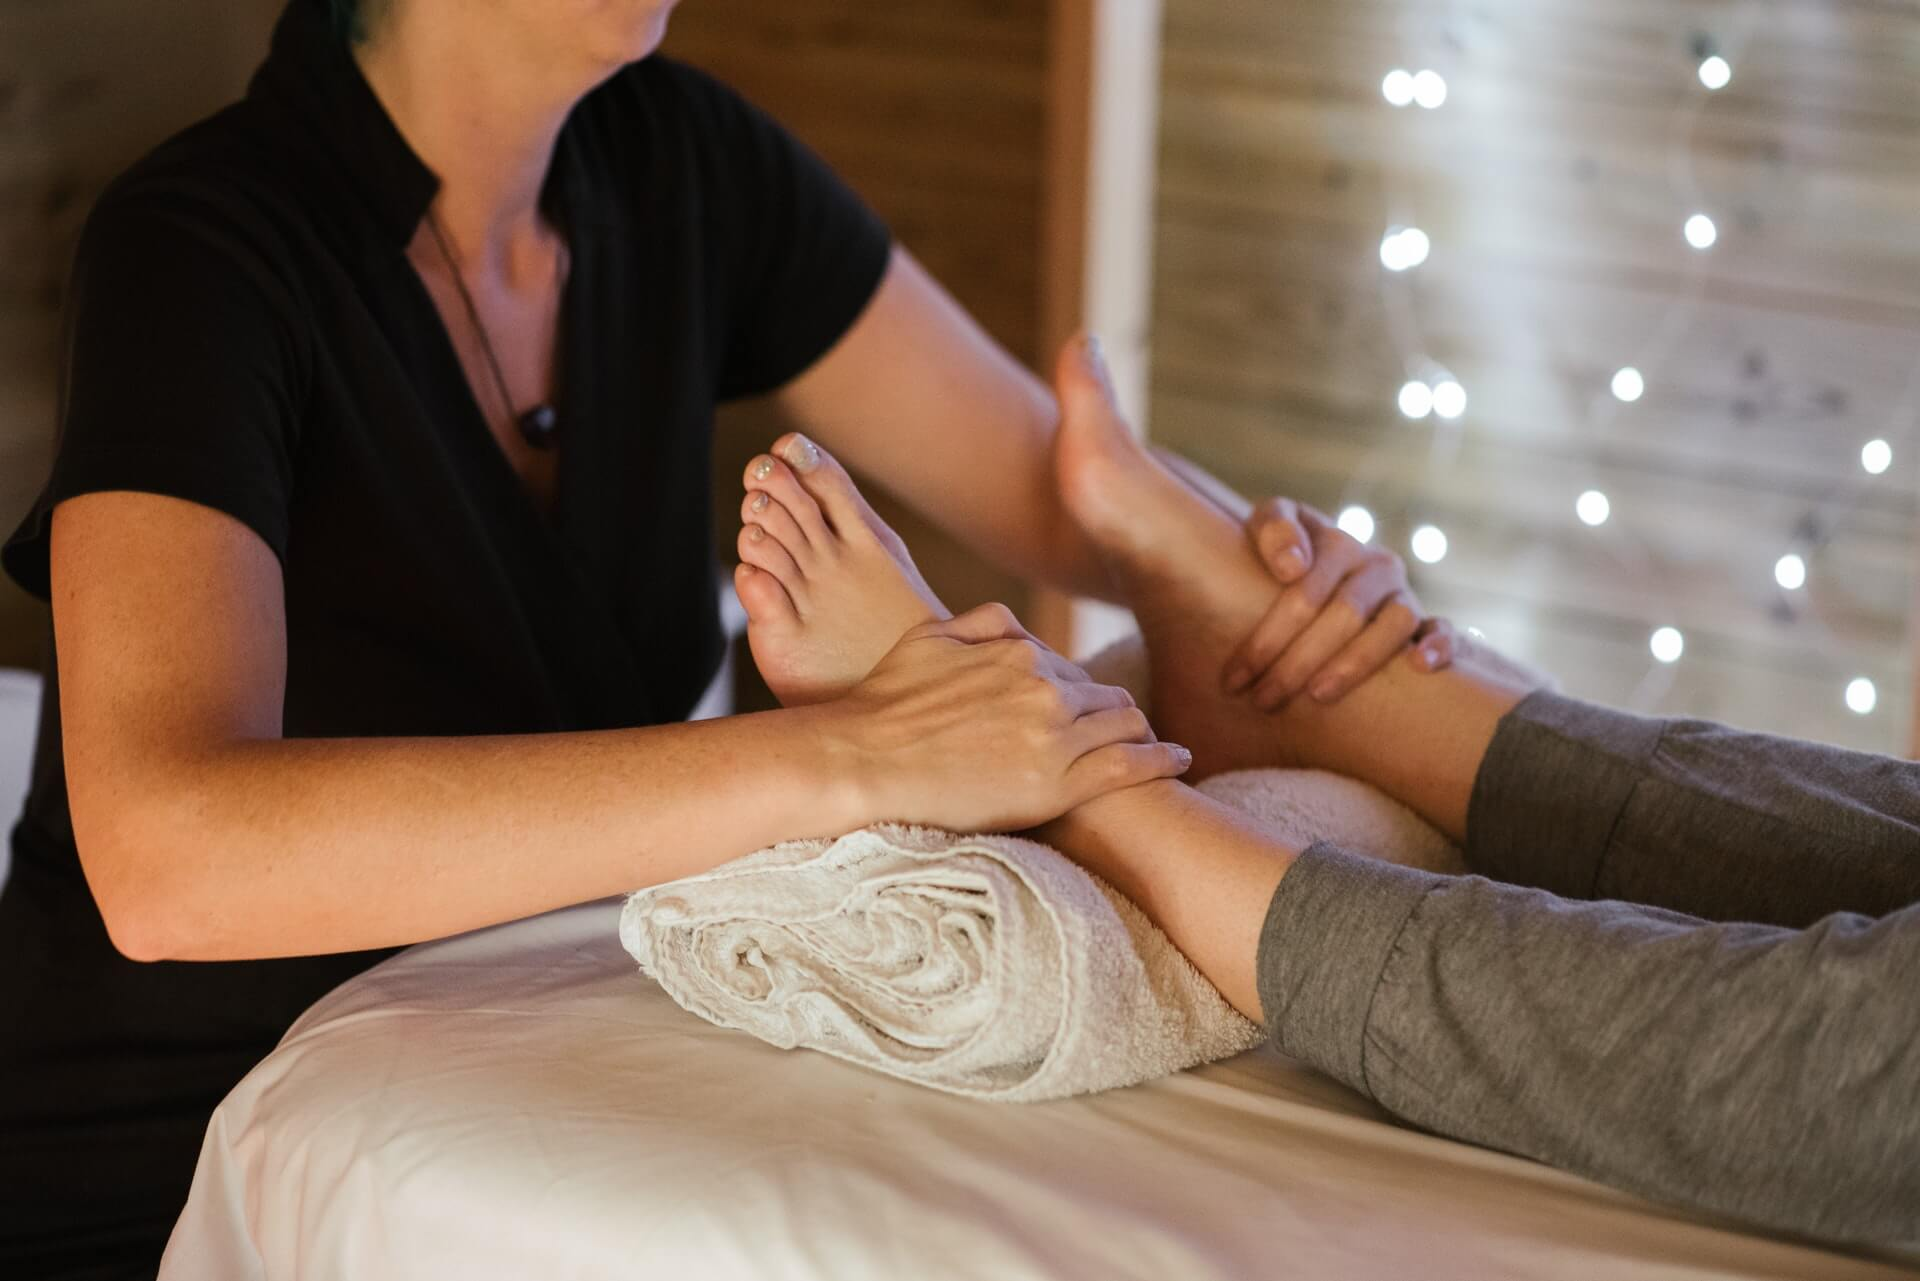 What does a podiatrist do?